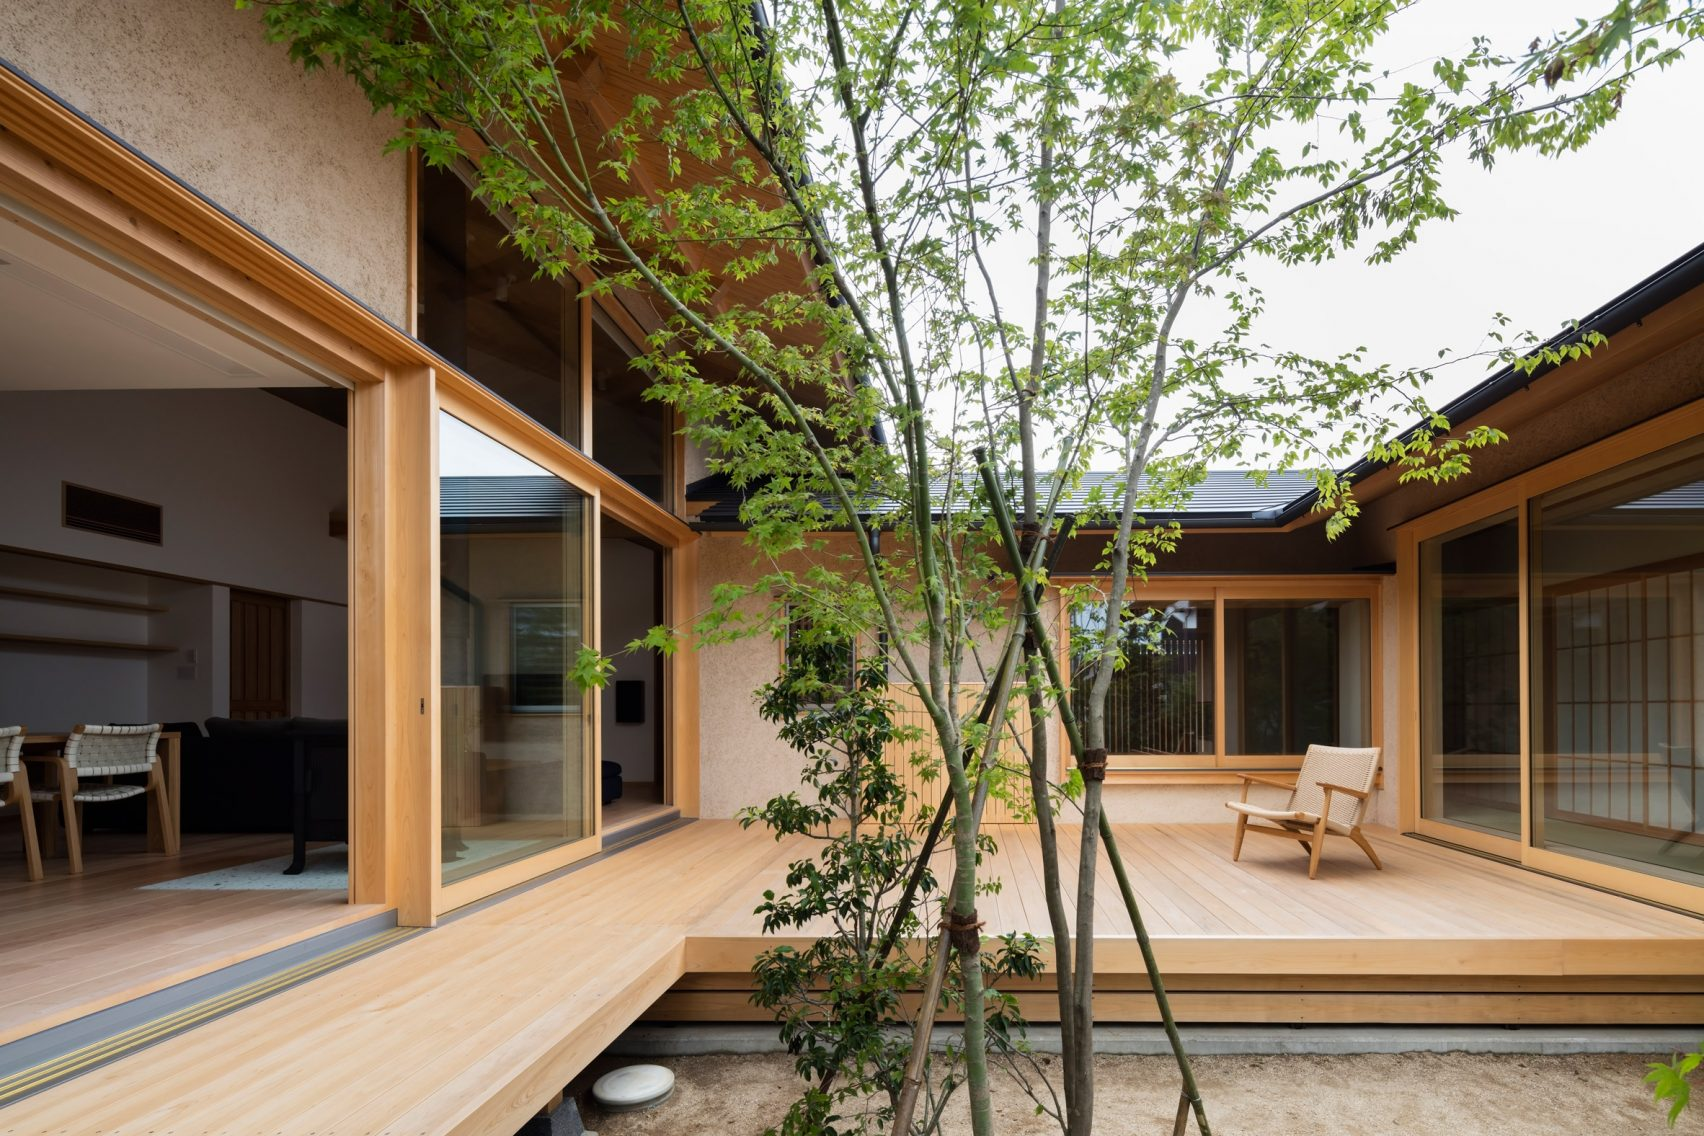 Open Floor Plan House Plans One Story Japanese Courtyard House Makes The Case For Simplicity